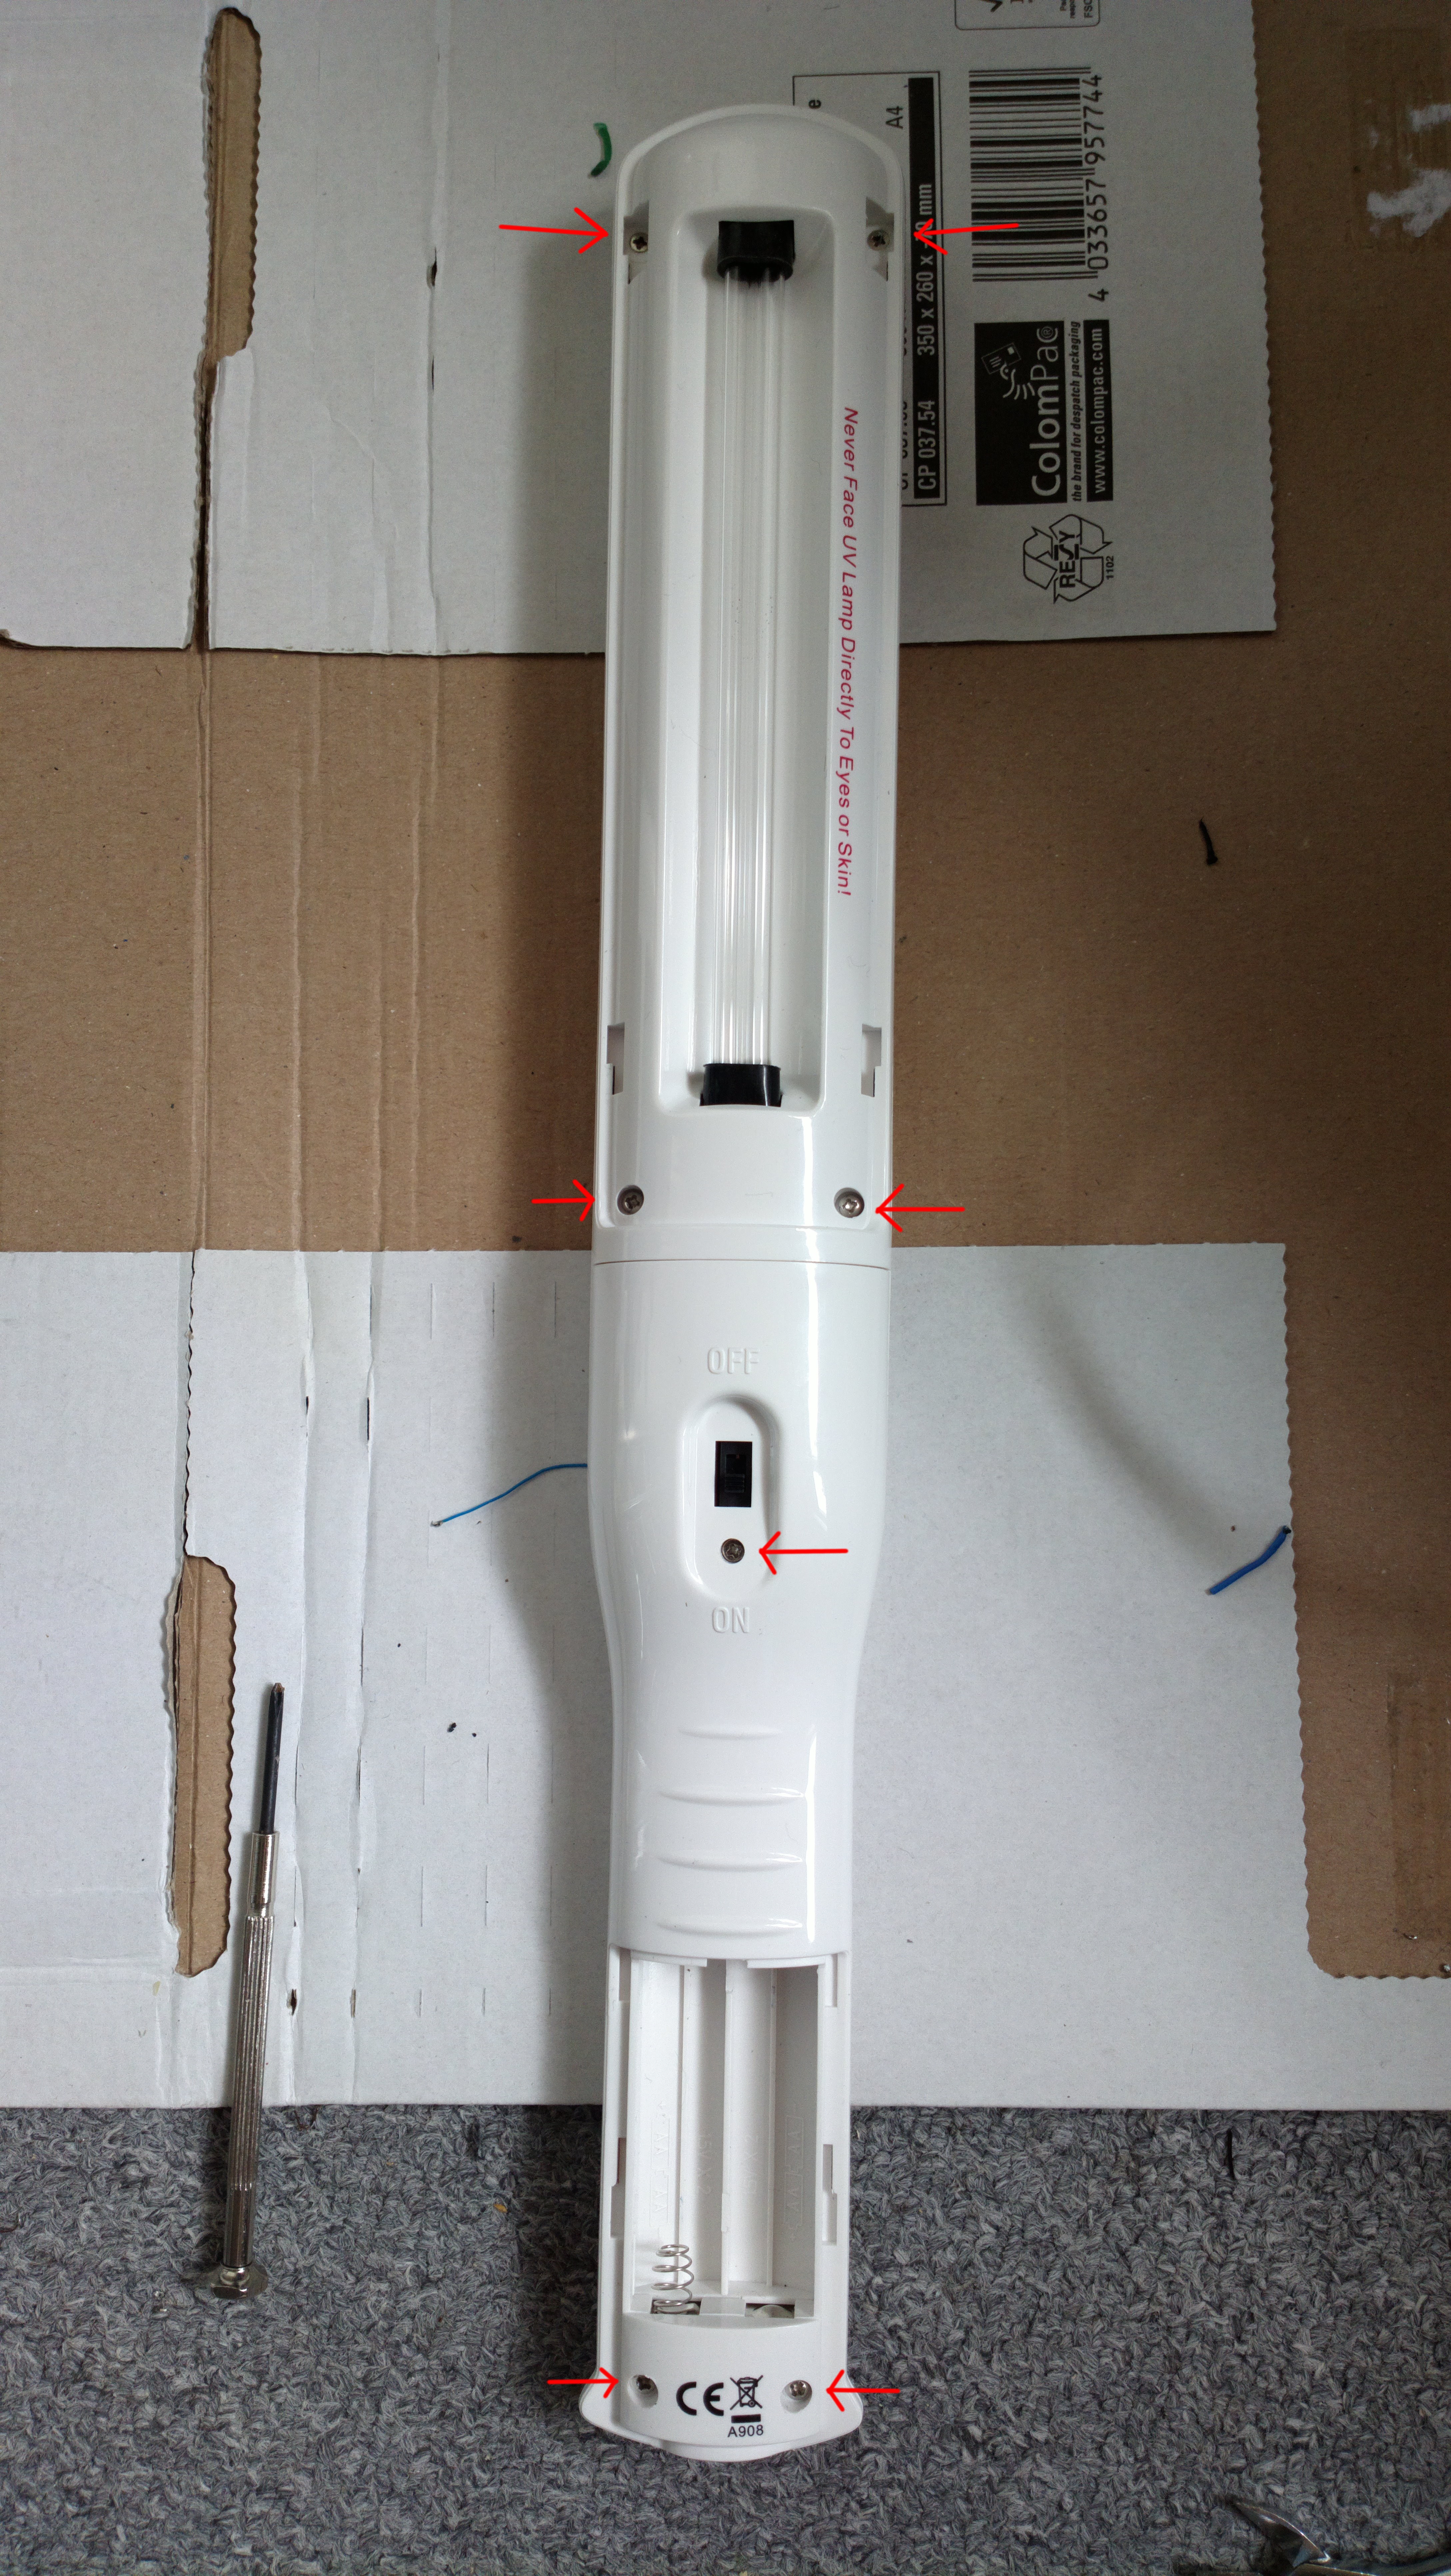 Picture of Open the Casing of the Lightwand (7 Screws)